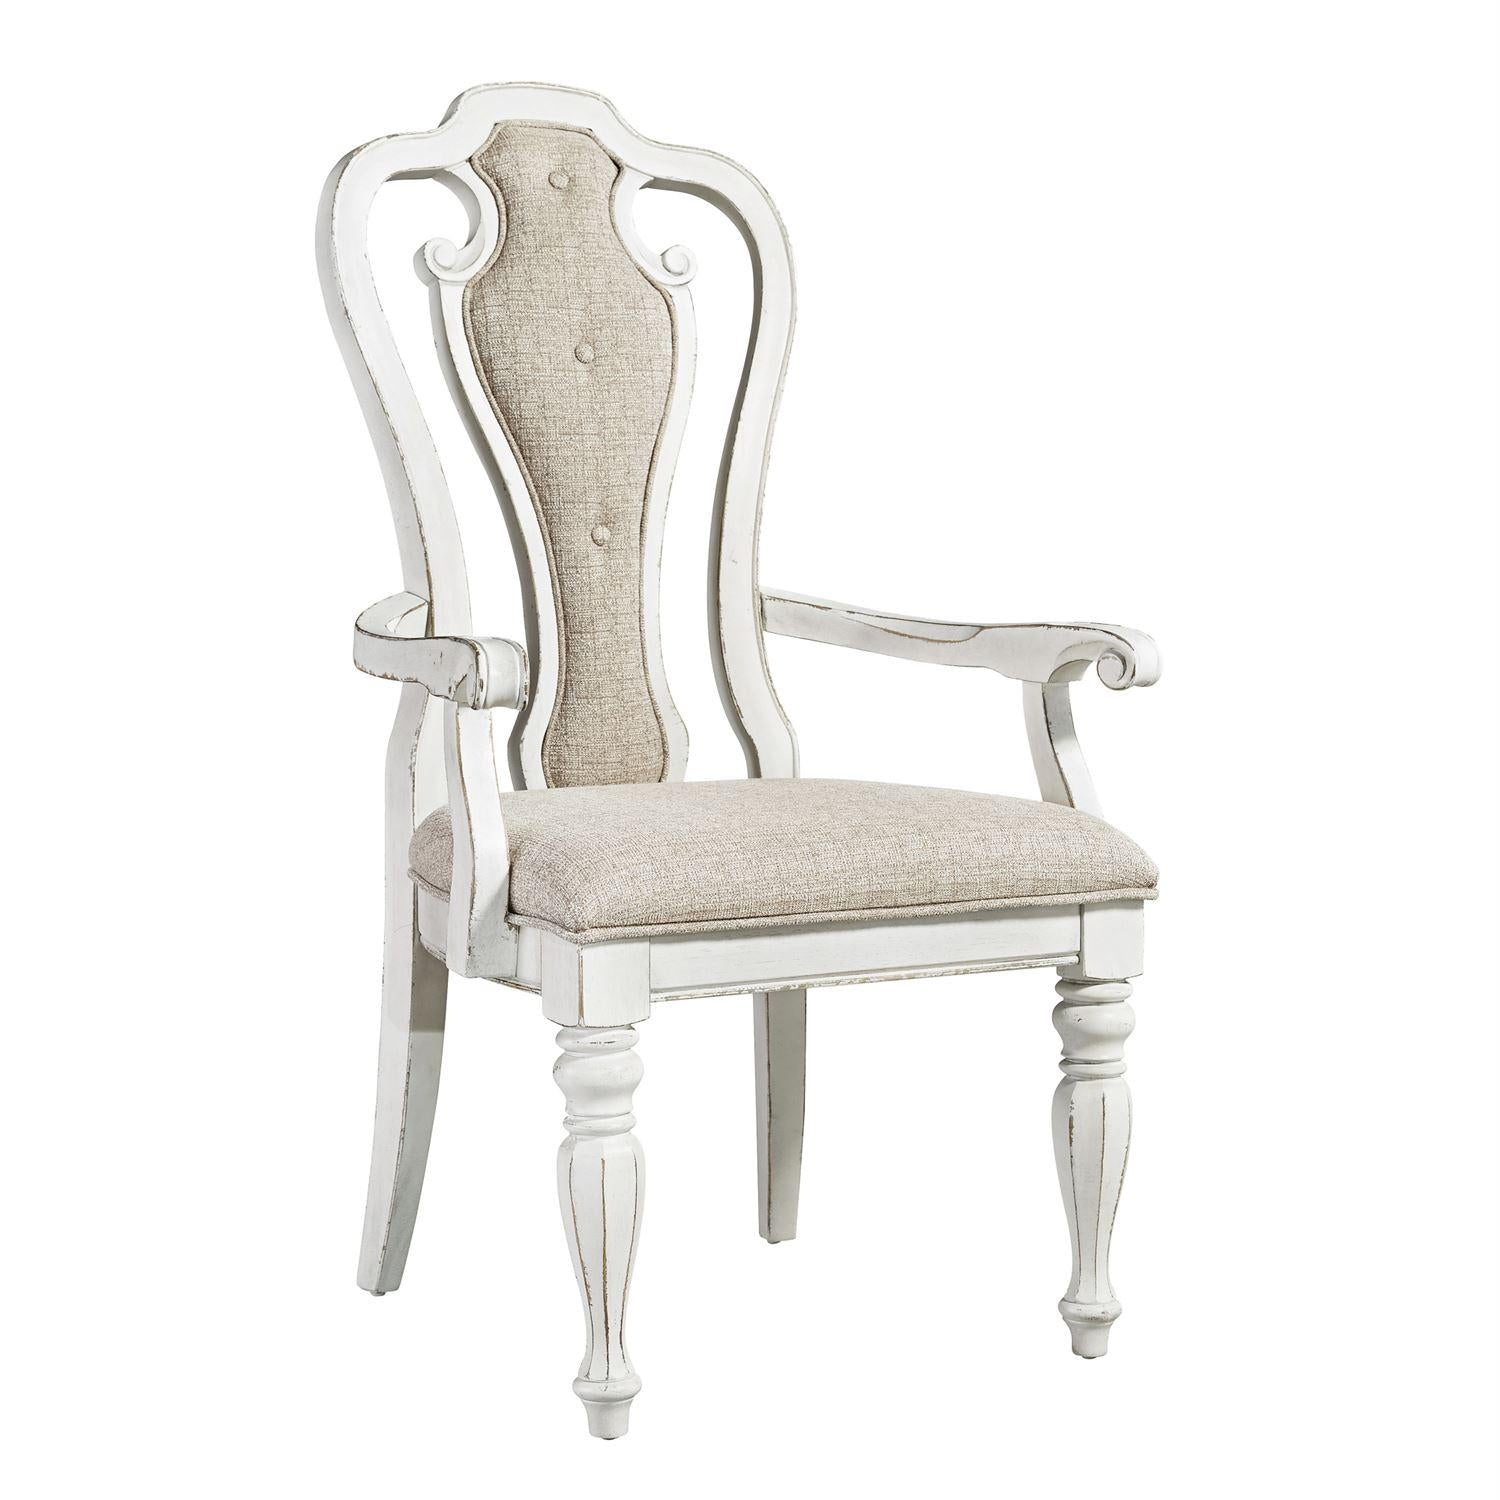 Magnolia Manor Upholstered Arm Chair